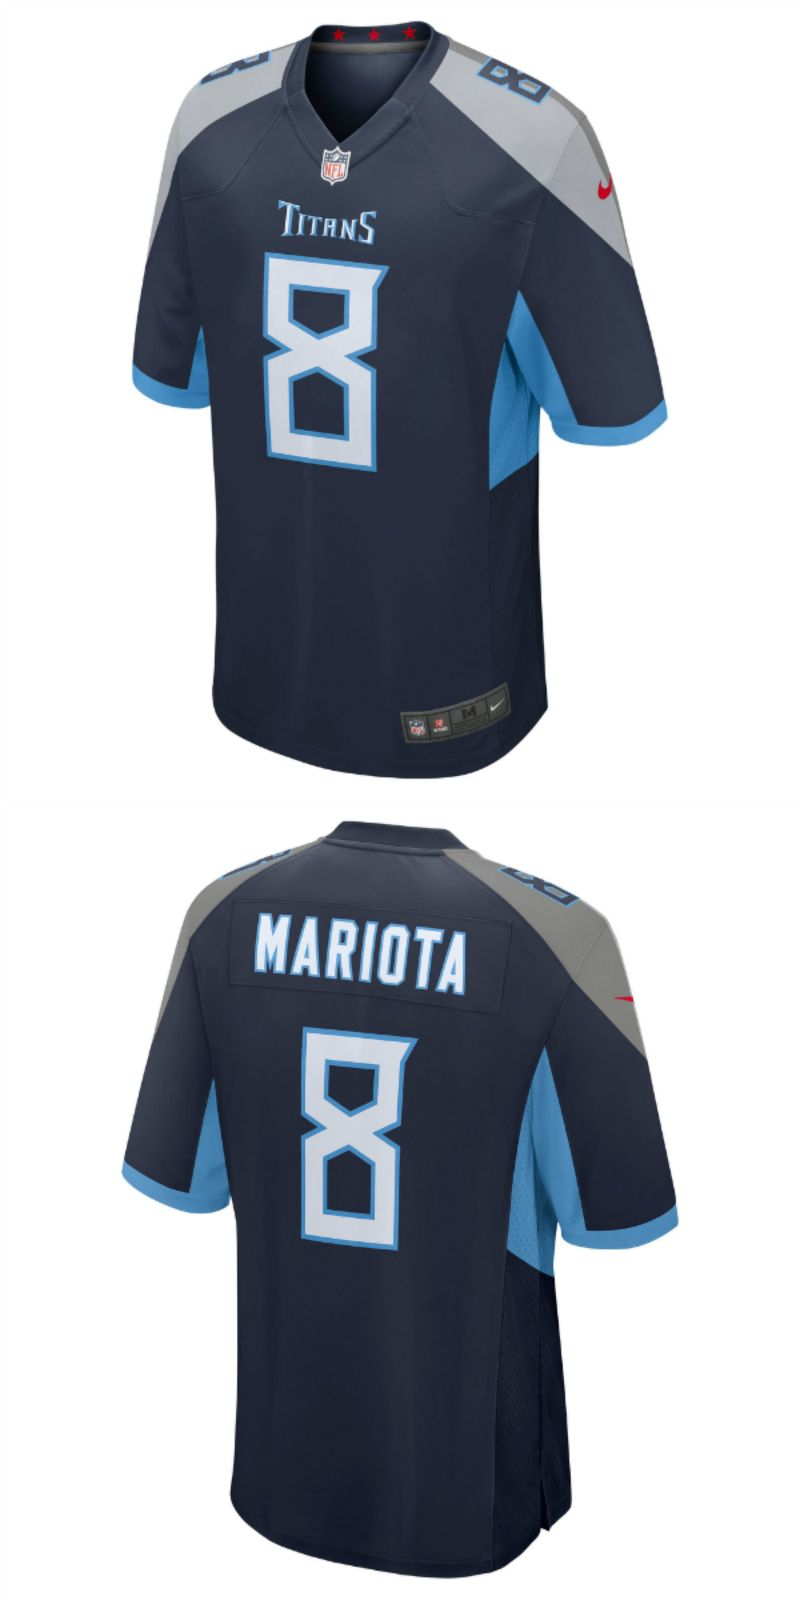 d8bd59da UP TO 70% OFF. Marcus Mariota Tennessee Titans Nike New 2018 Game ...